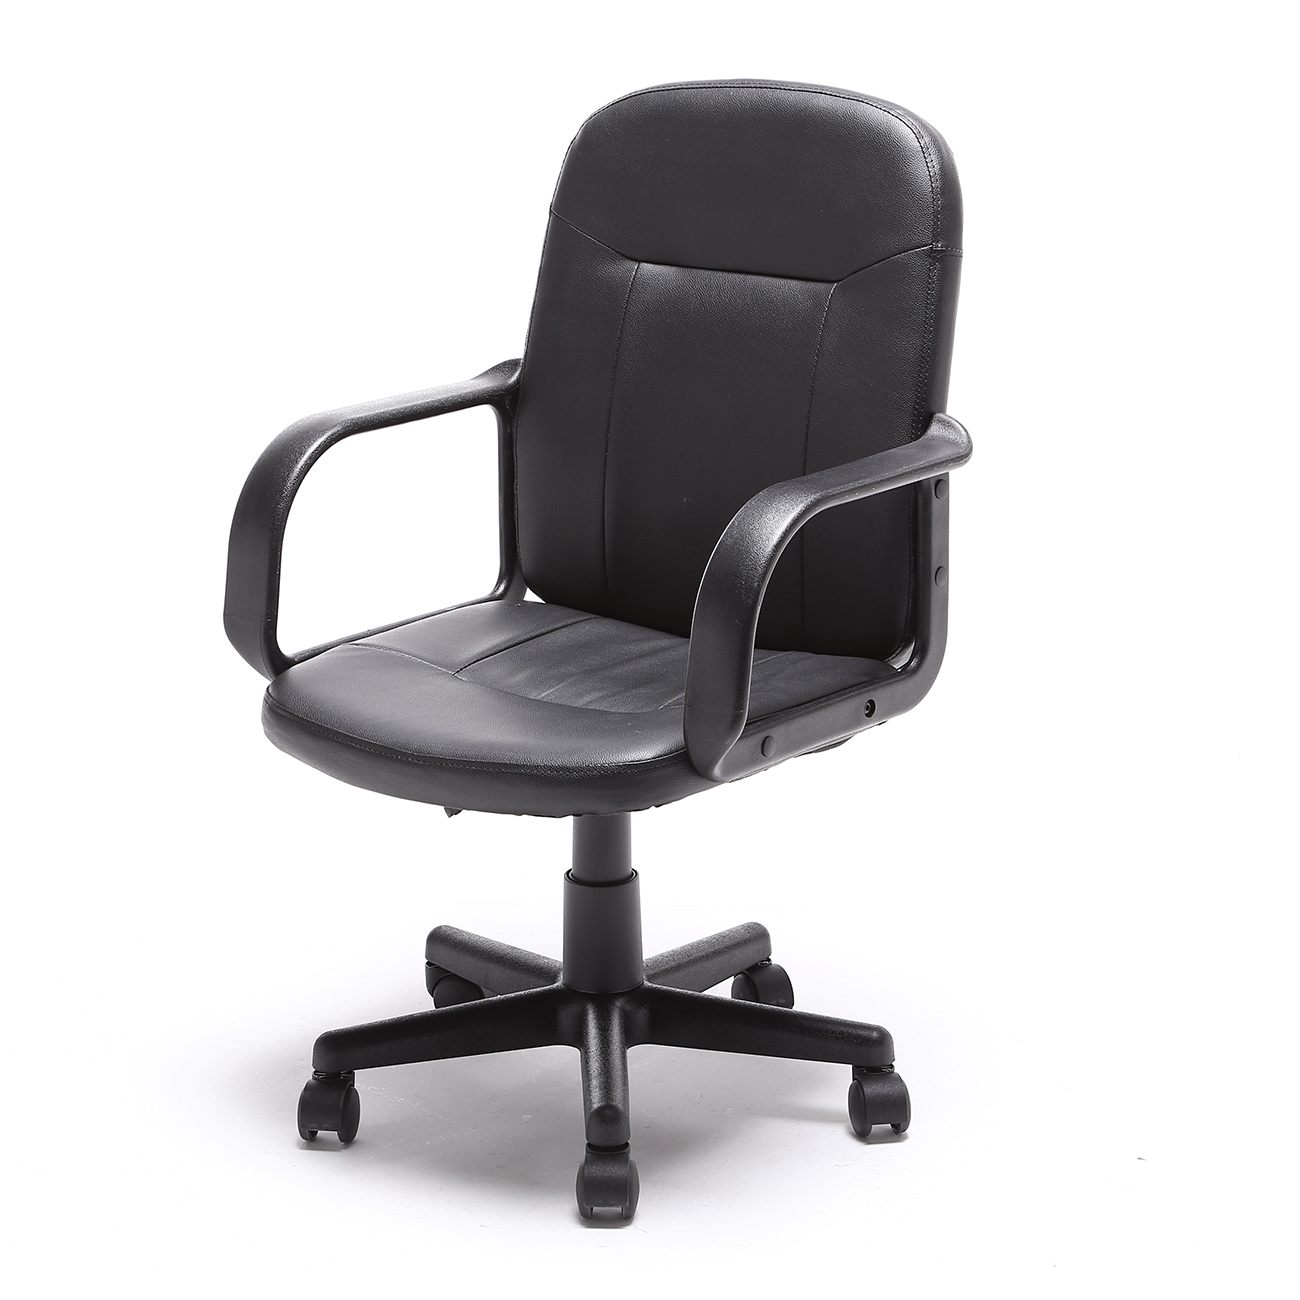 pu leather office chair and a half slipcovers t cushion high back executive ergonomic desk